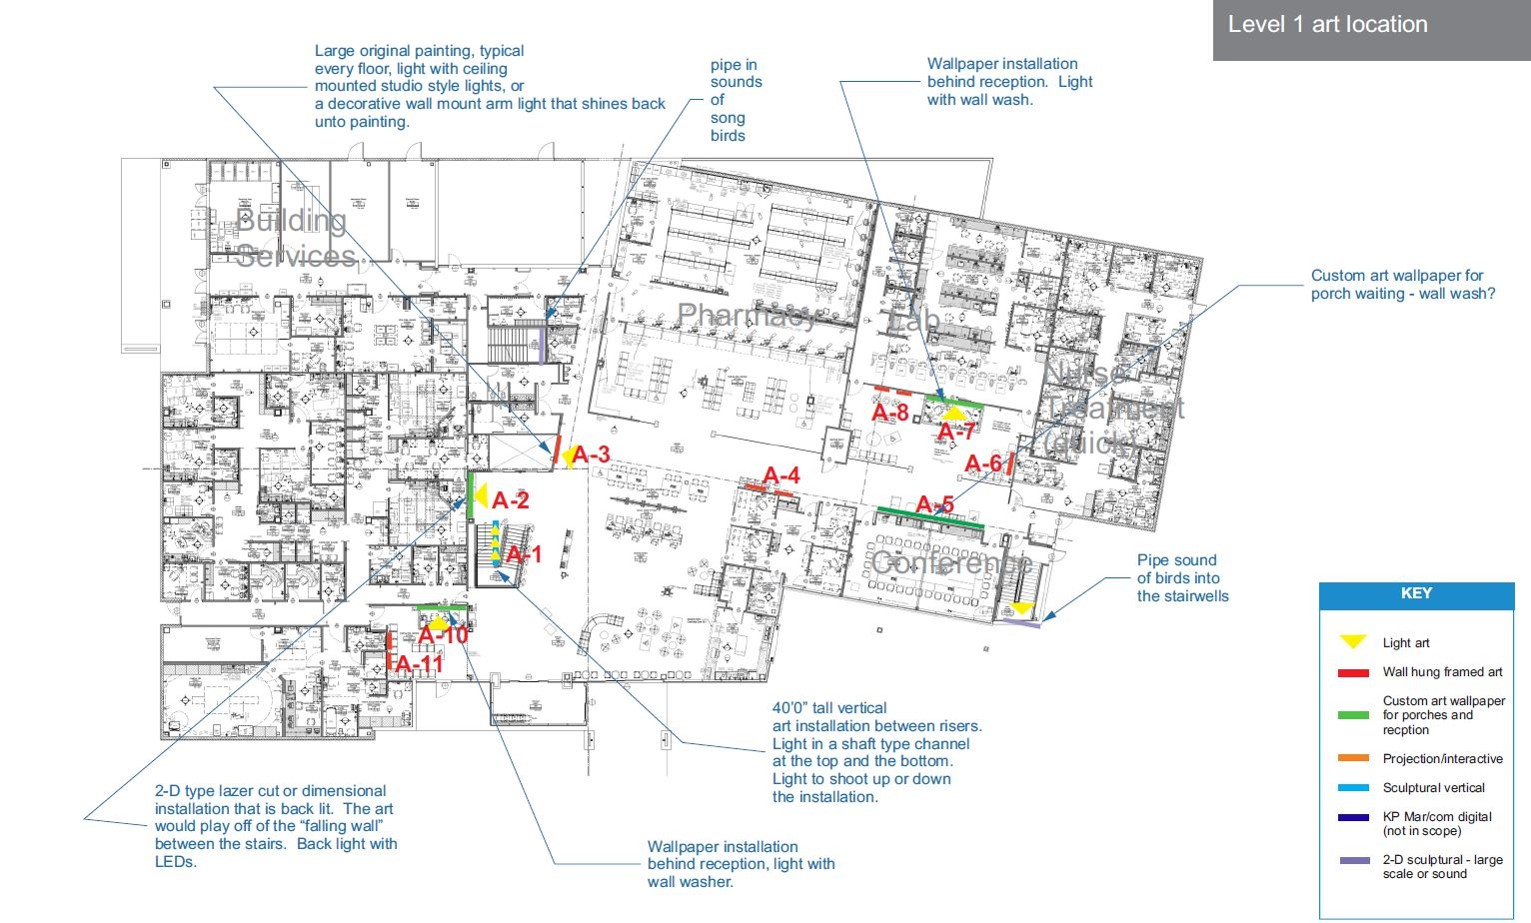 Initial Art Location Map for Kaiser Permanente Beaverton Medical Office Building